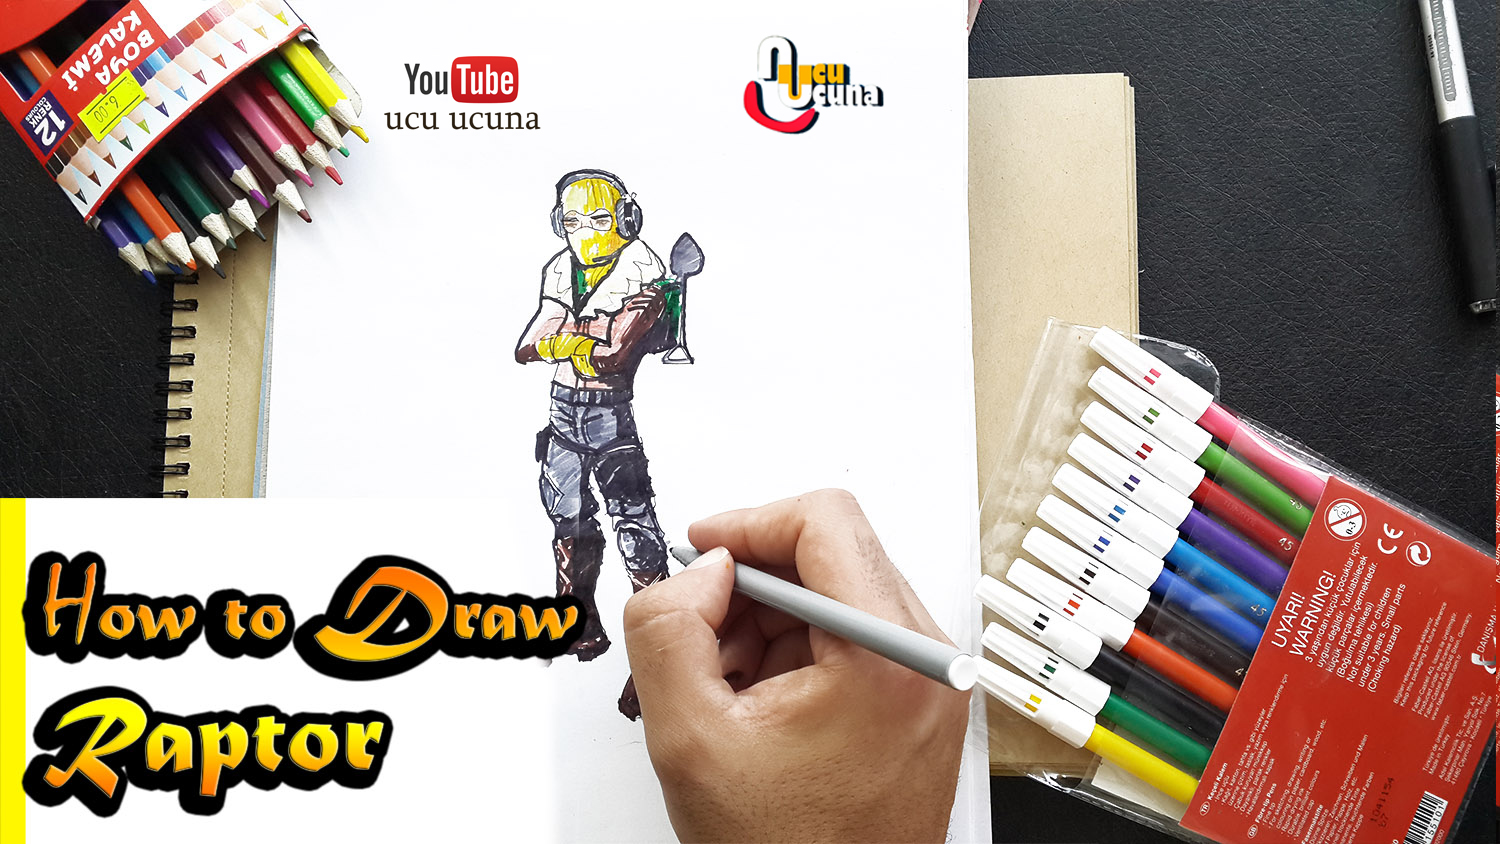 How to draw raptor step by step tutorial youtube channel name is ucu ucuna